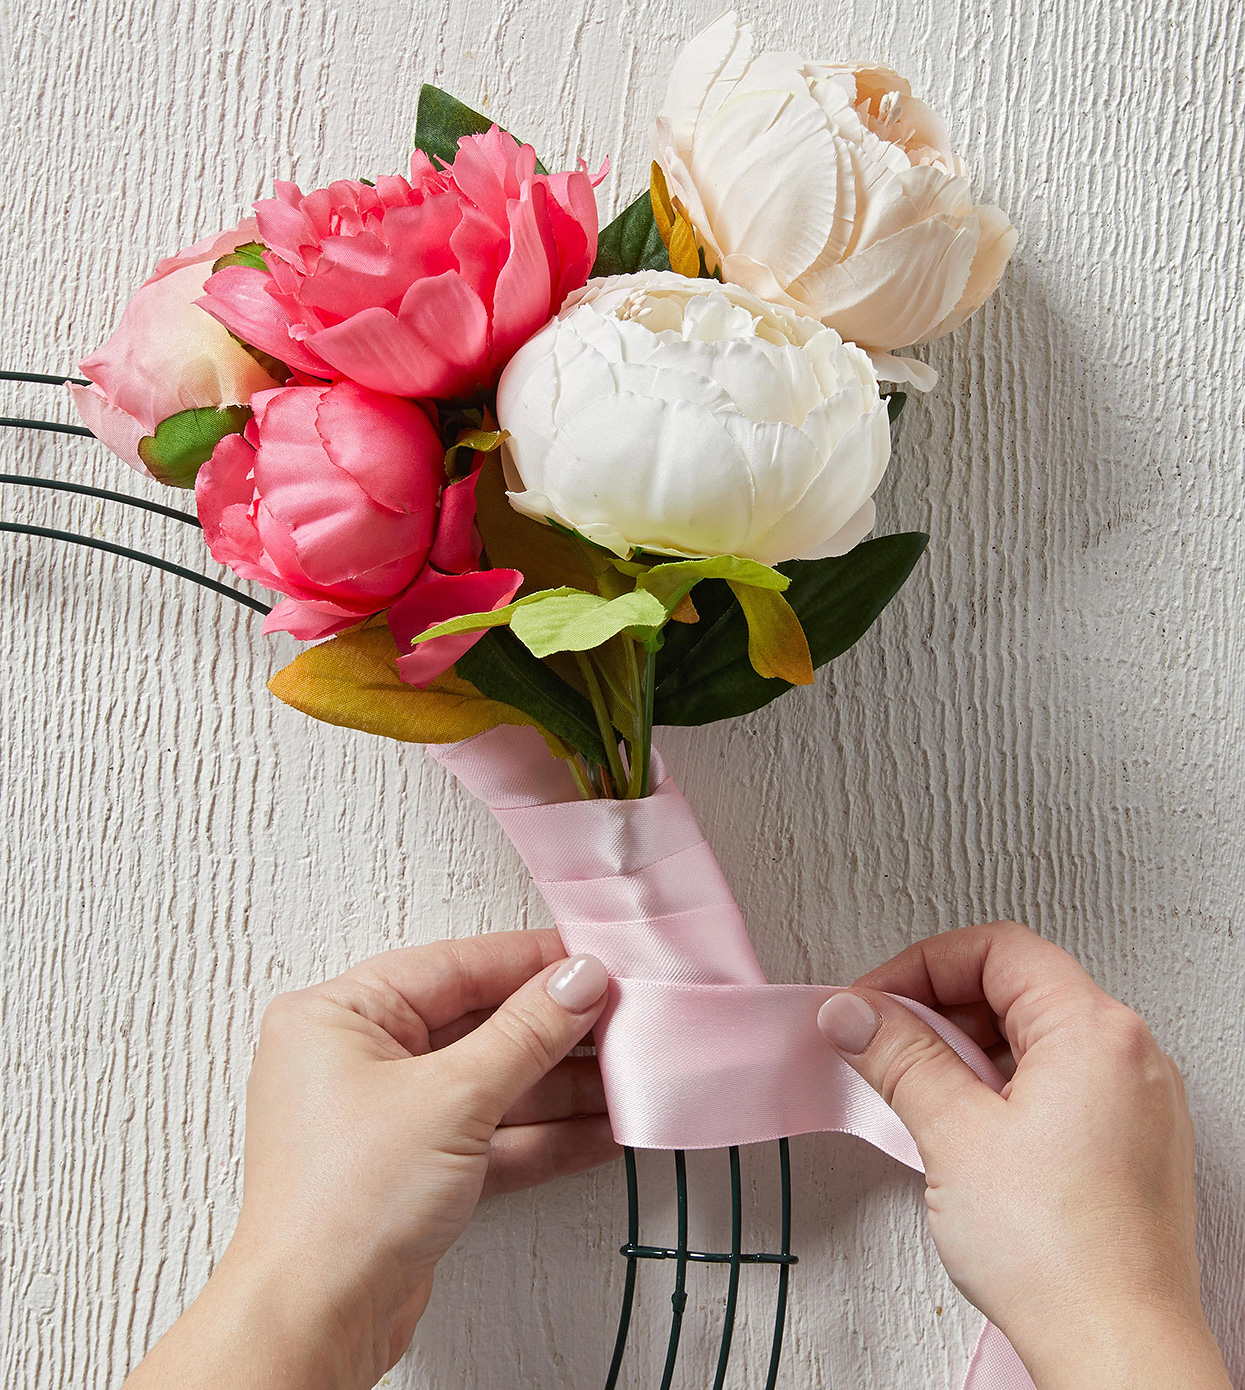 wrapping pink ribbon around artificial floral stems on wreath